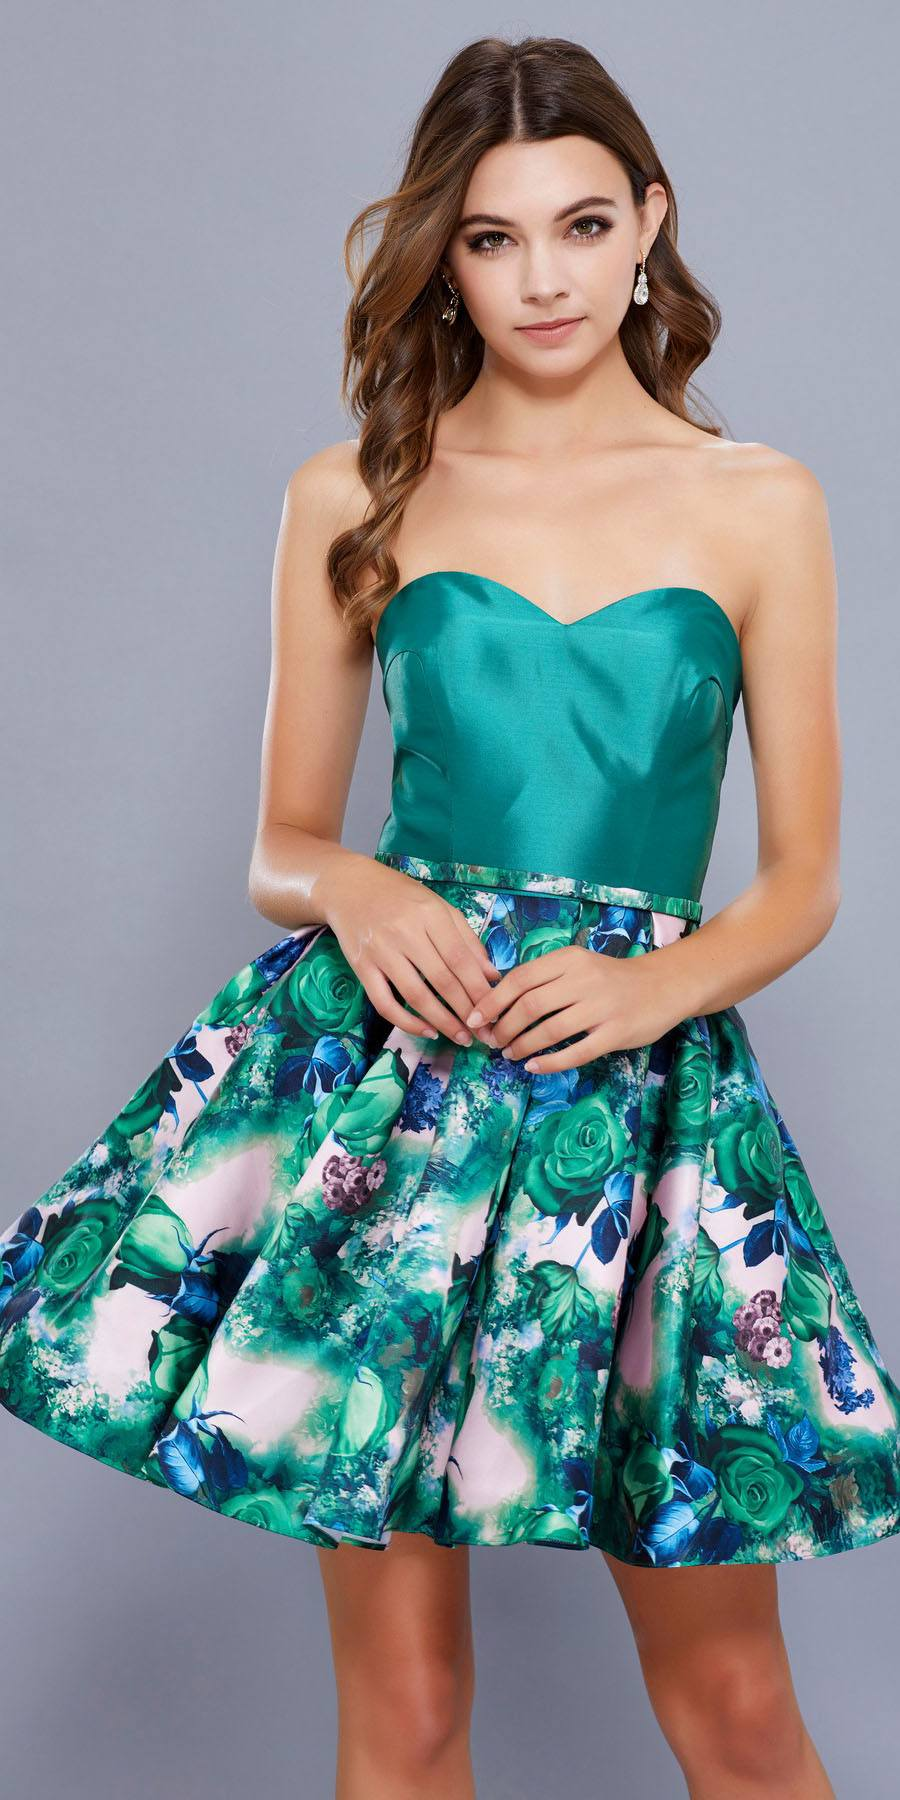 2b561f673ad Sweetheart Neckline Floral Printed Skirt Strapless Homecoming Dress Green.  Tap to expand